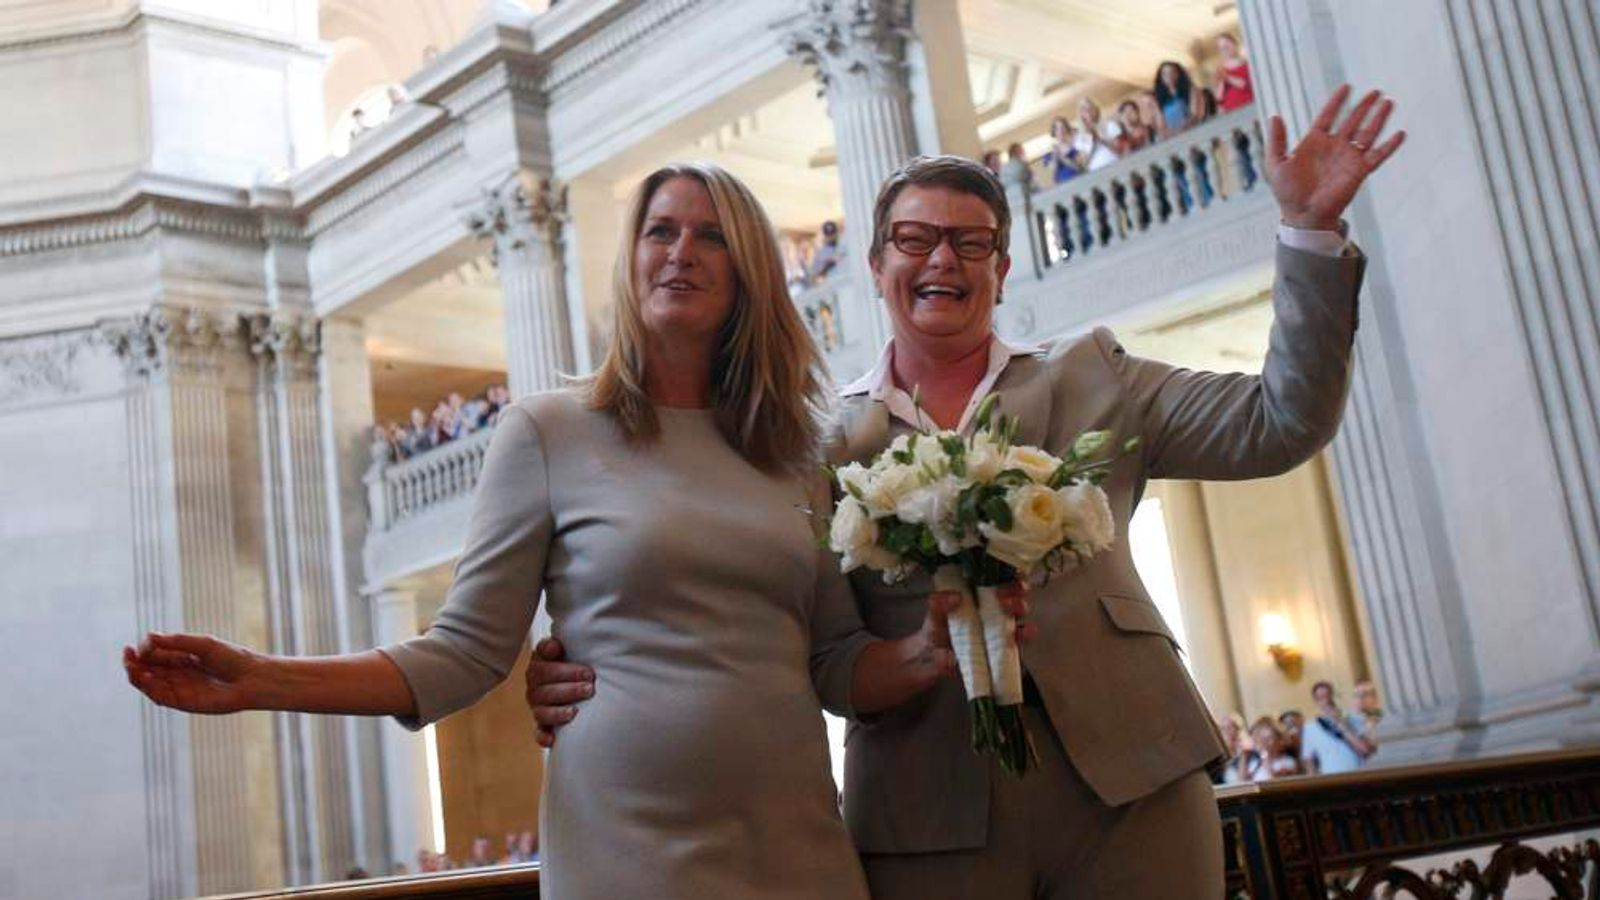 Sandy Stier and Kristin Perry wave after getting married in San Francisco